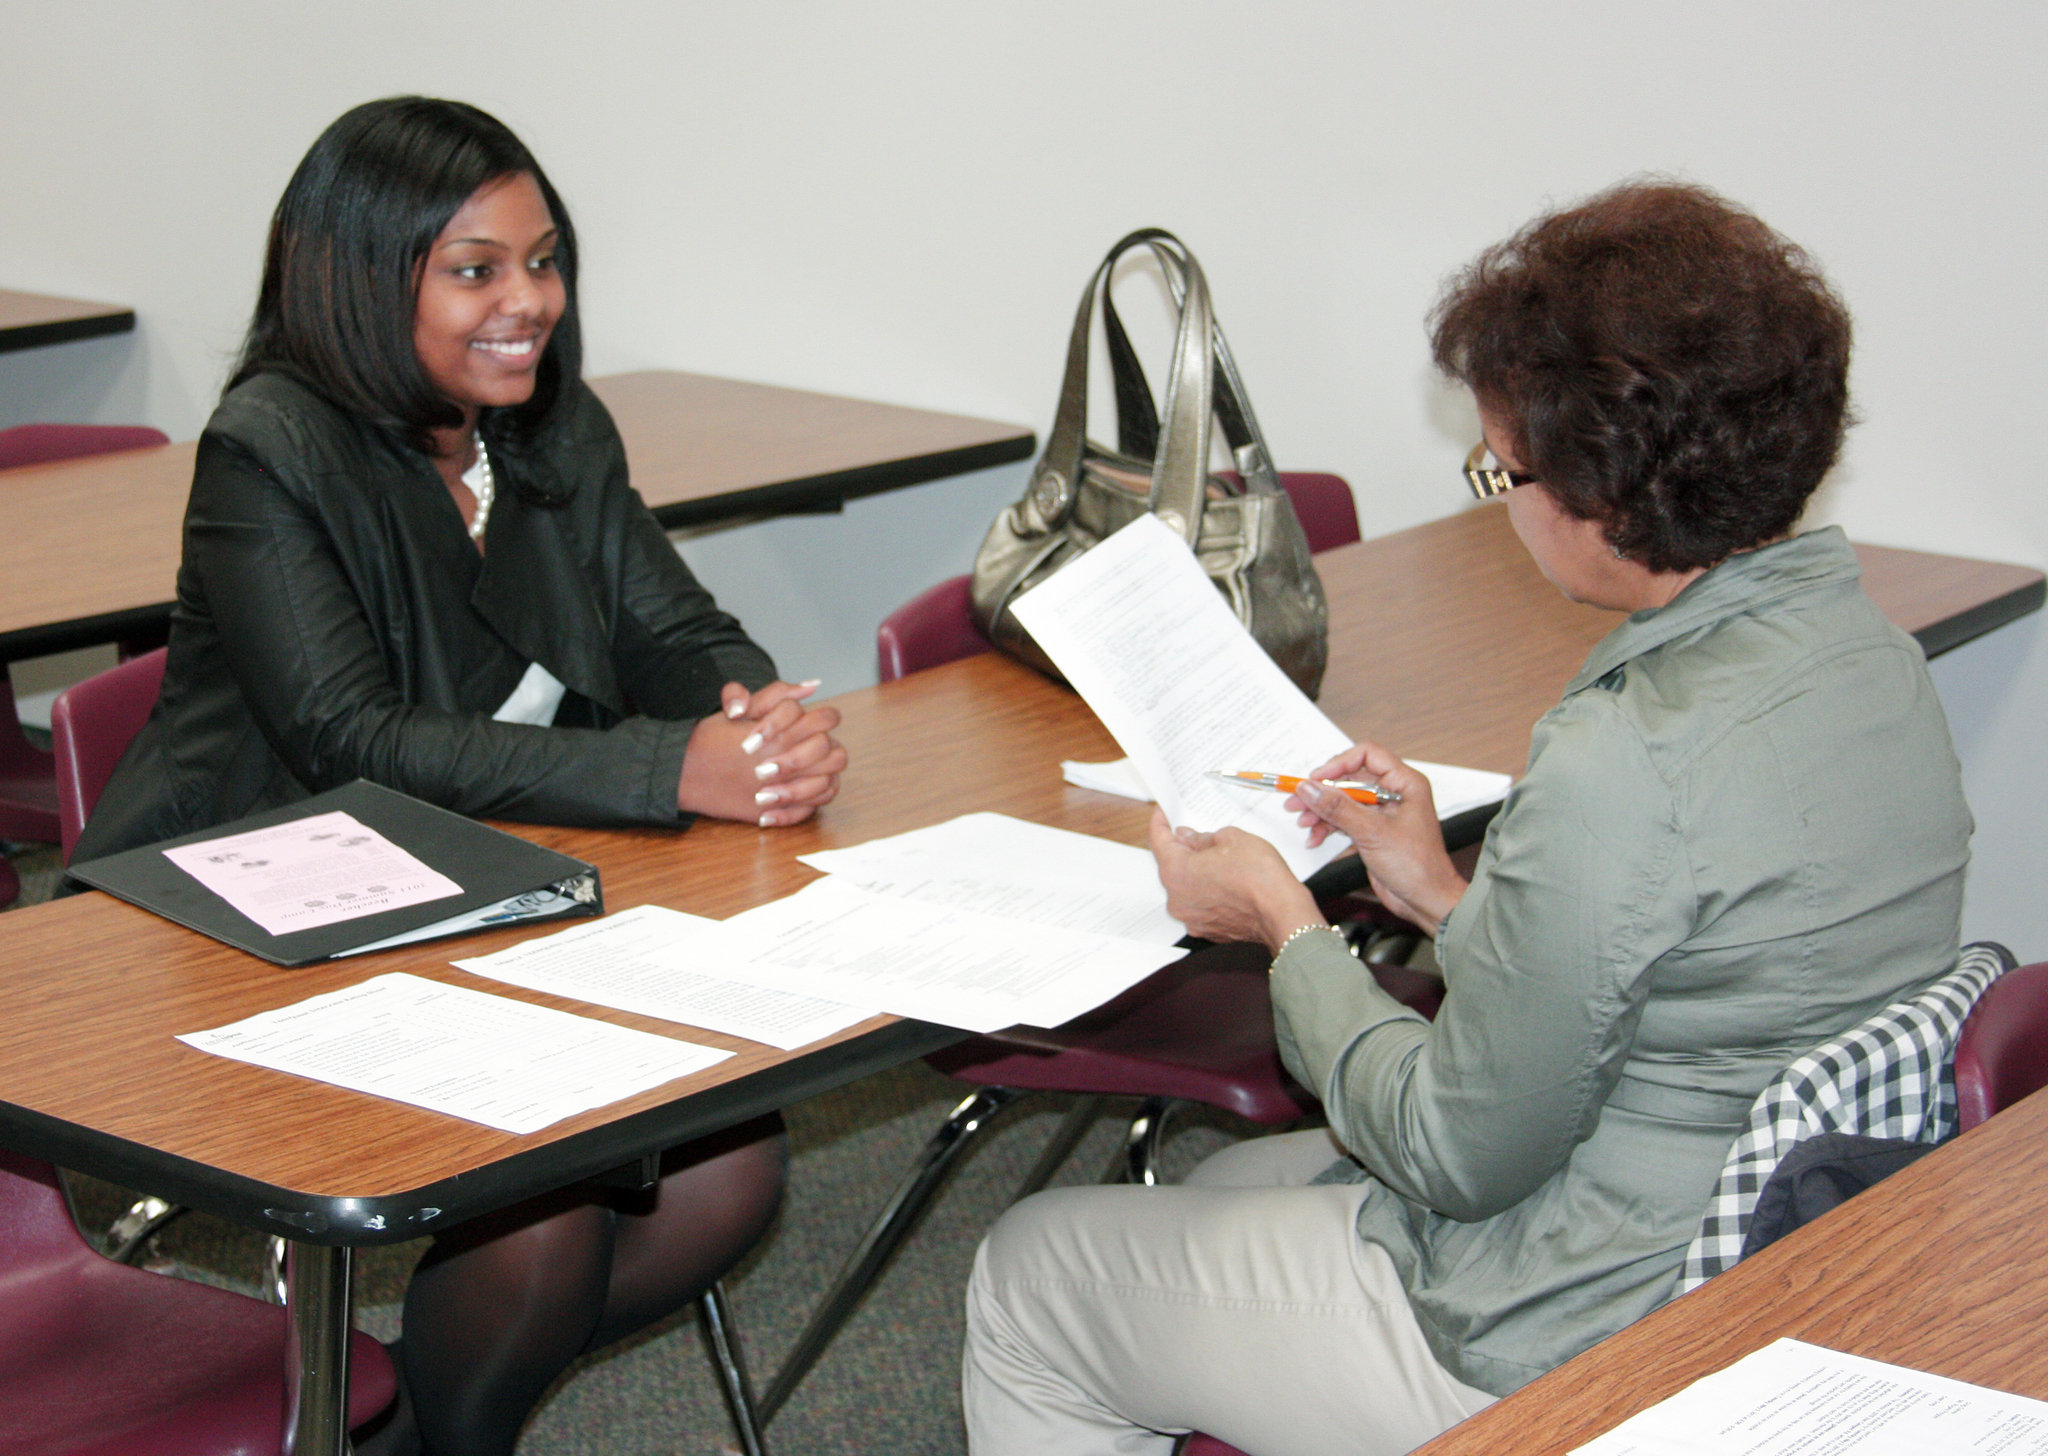 10 Tips For Teens To Have A Successful Job Interview